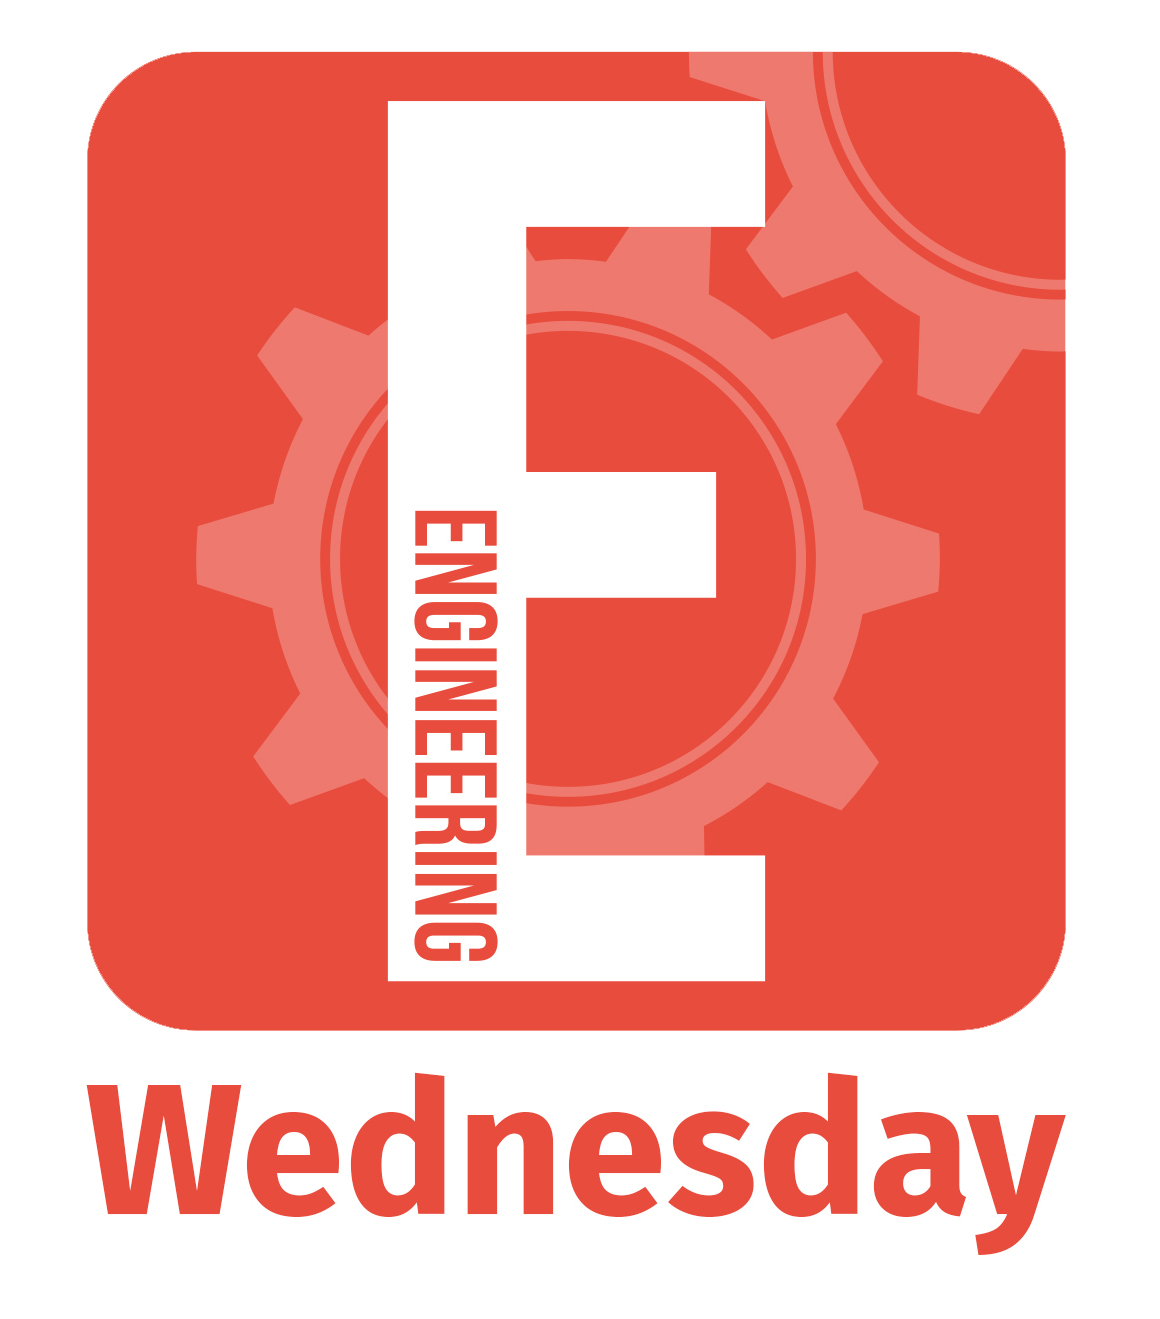 STEAM - Engineering Wednesday